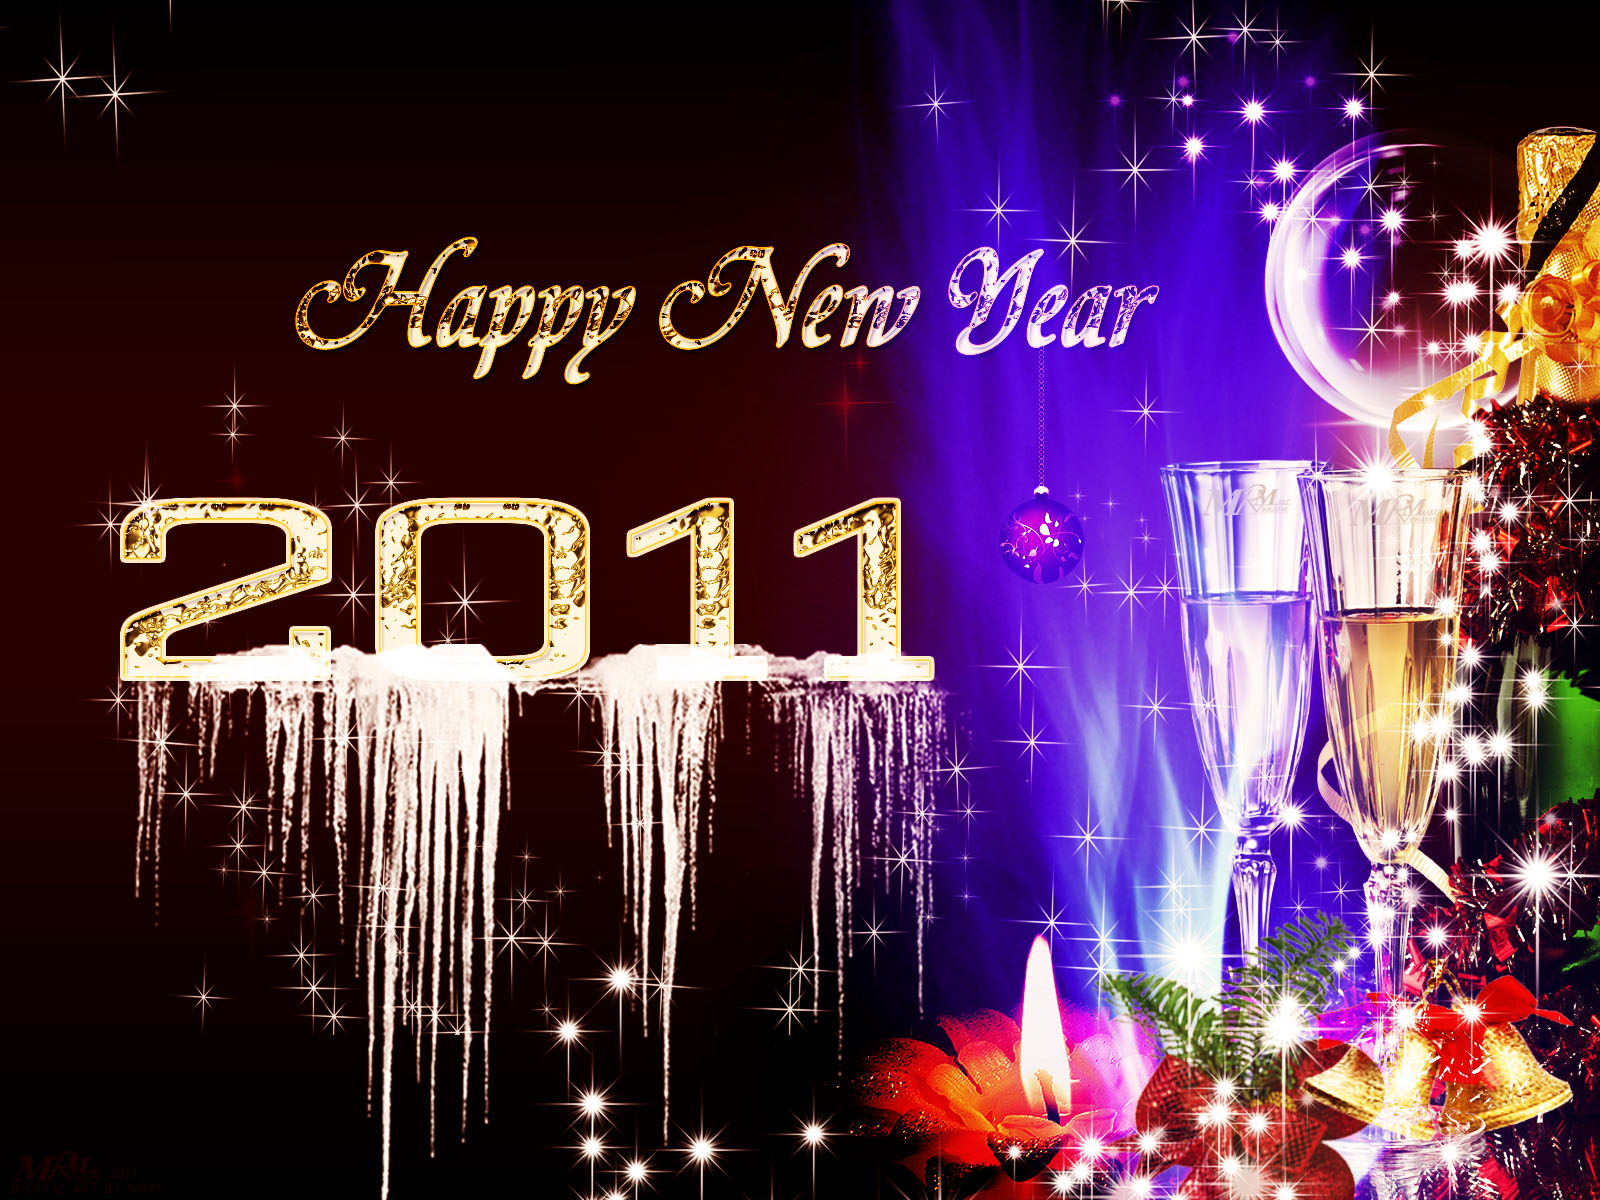 http://3.bp.blogspot.com/_Vpo6b1bGJNU/TR3WqPmlmPI/AAAAAAAAAsM/PW4aPkX0gGc/s1600/New+Year+Wallpaper+2011++...+new+year+2011_by+mrm_1.jpg